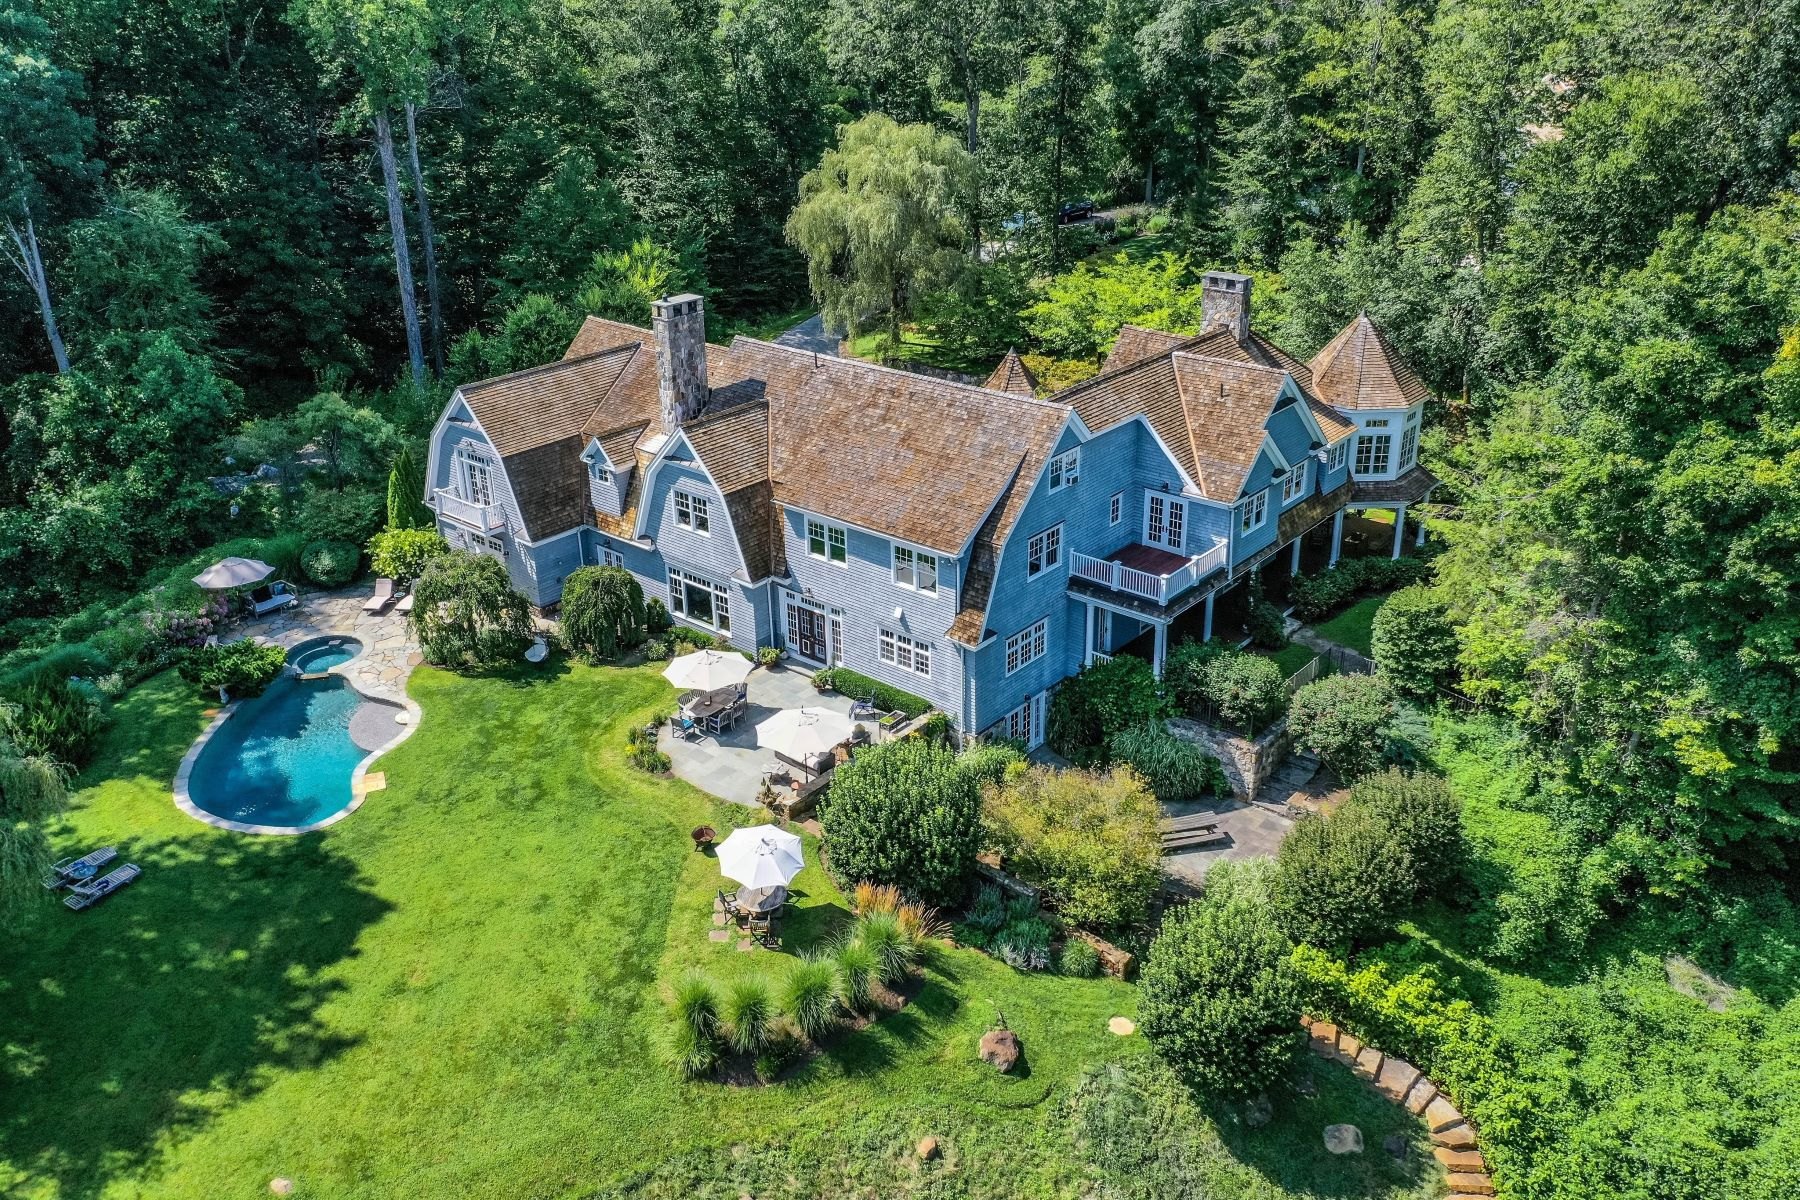 Single Family Homes for Sale at Enchanting Retreat with Magnificent Views 36 Michaels Way Weston, Connecticut 06883 United States